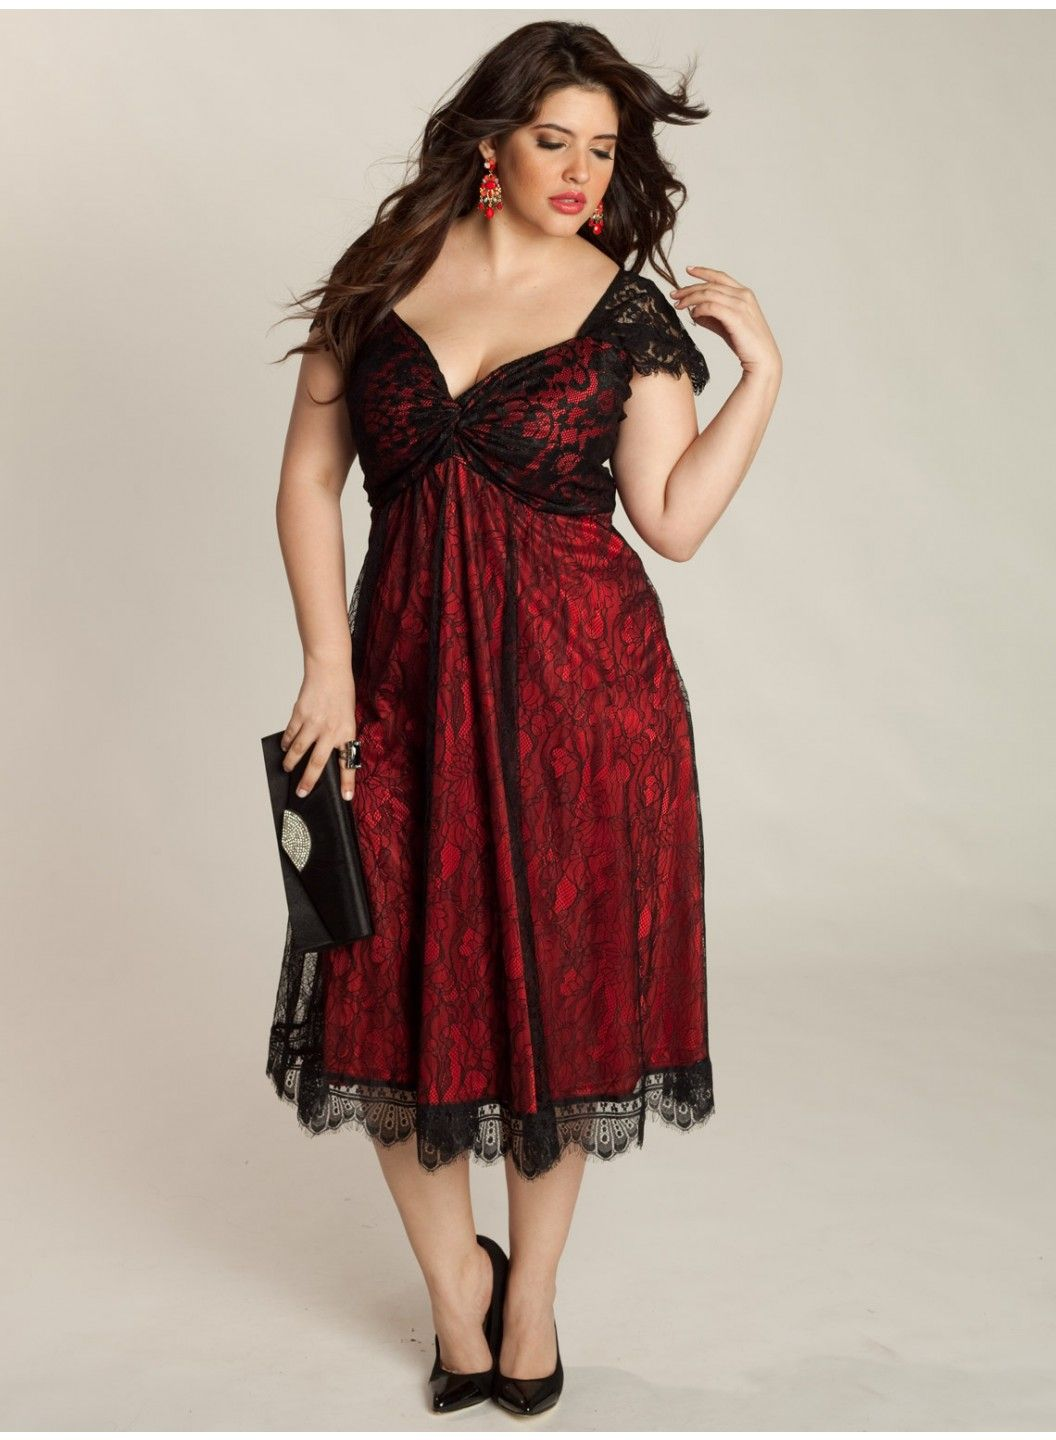 2019 year look- Size Plus red dress canada pictures